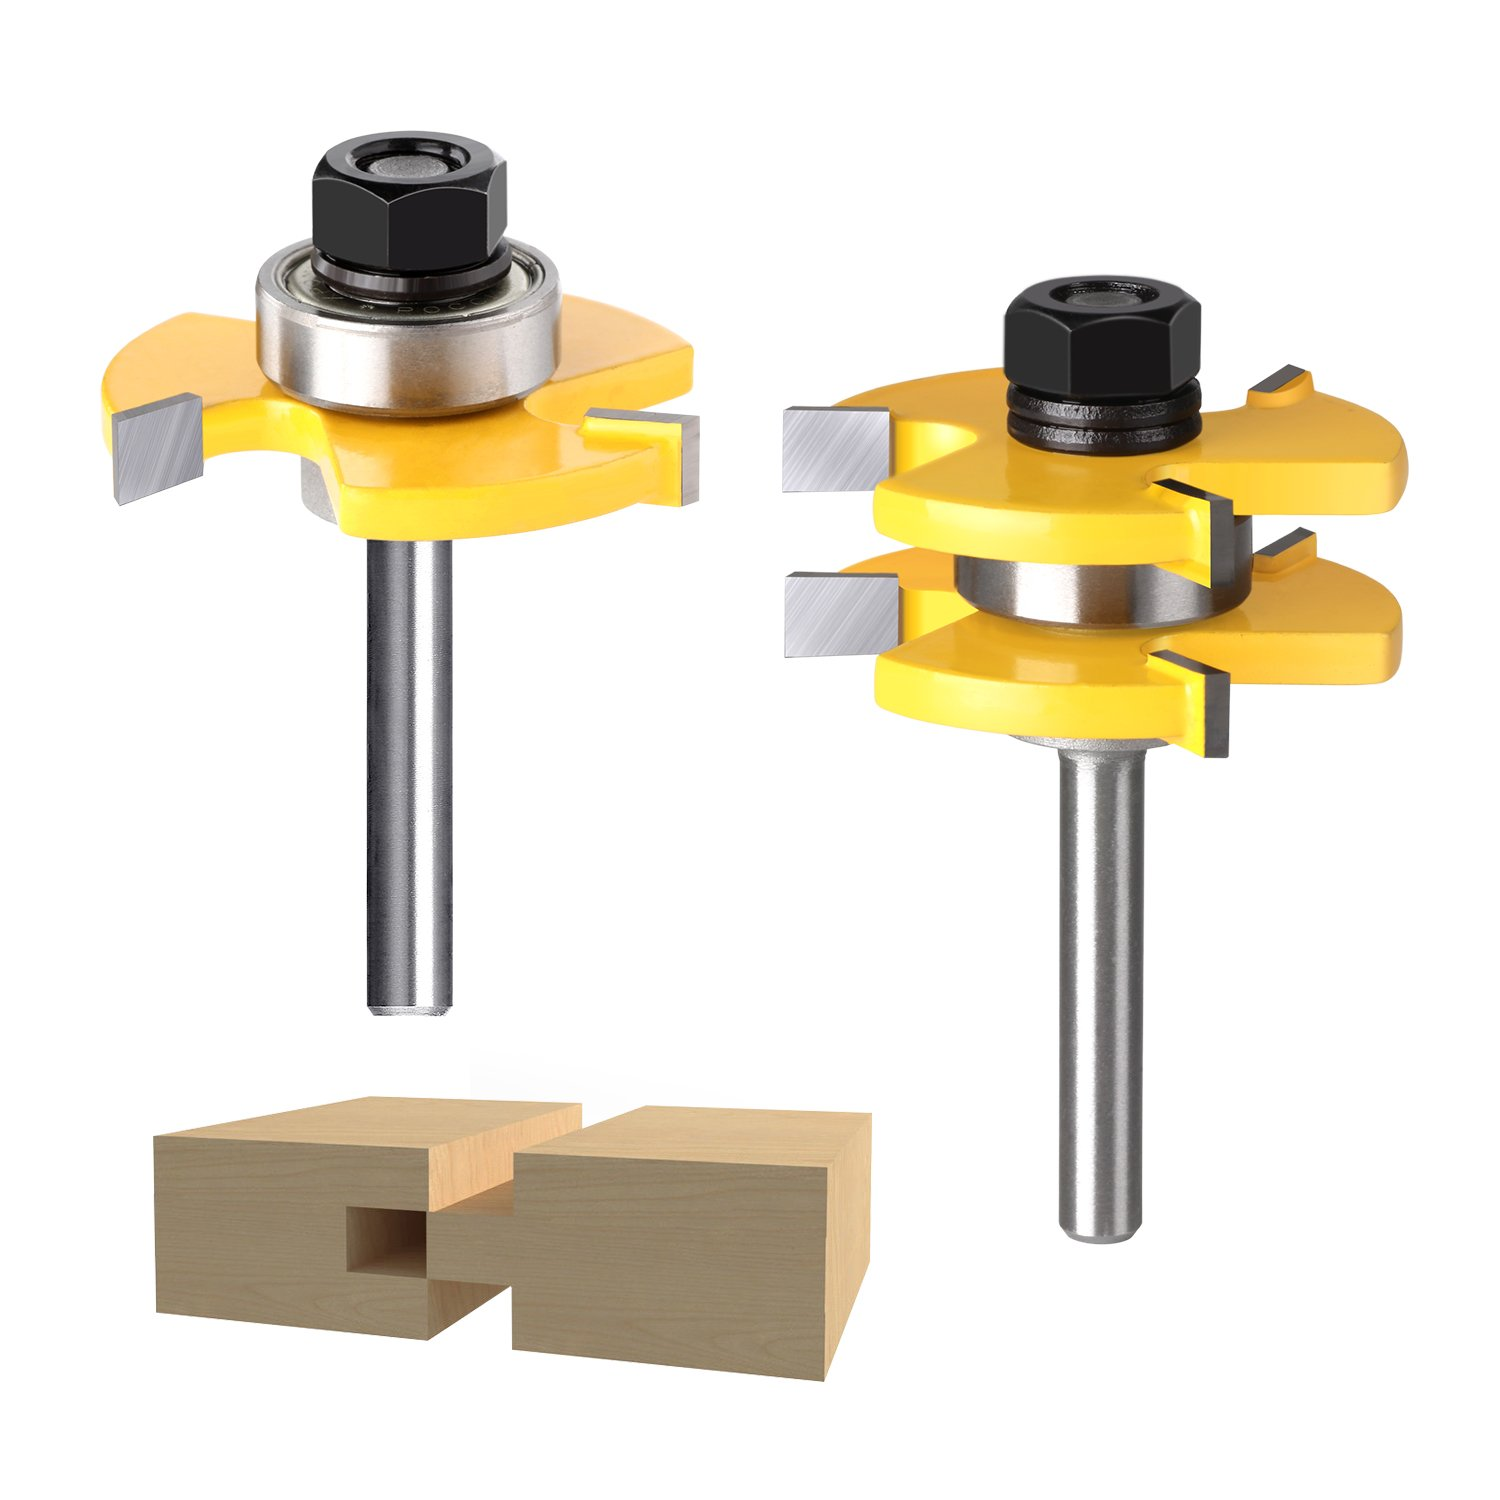 Tongue and Groove Set, Beauty Star 2pcs Grooving Router Bit, Wood Door Flooring 3 Teeth Adjustable with 1/4 Inch Shank T Shape Wood Milling Cutter Woodworking Tools